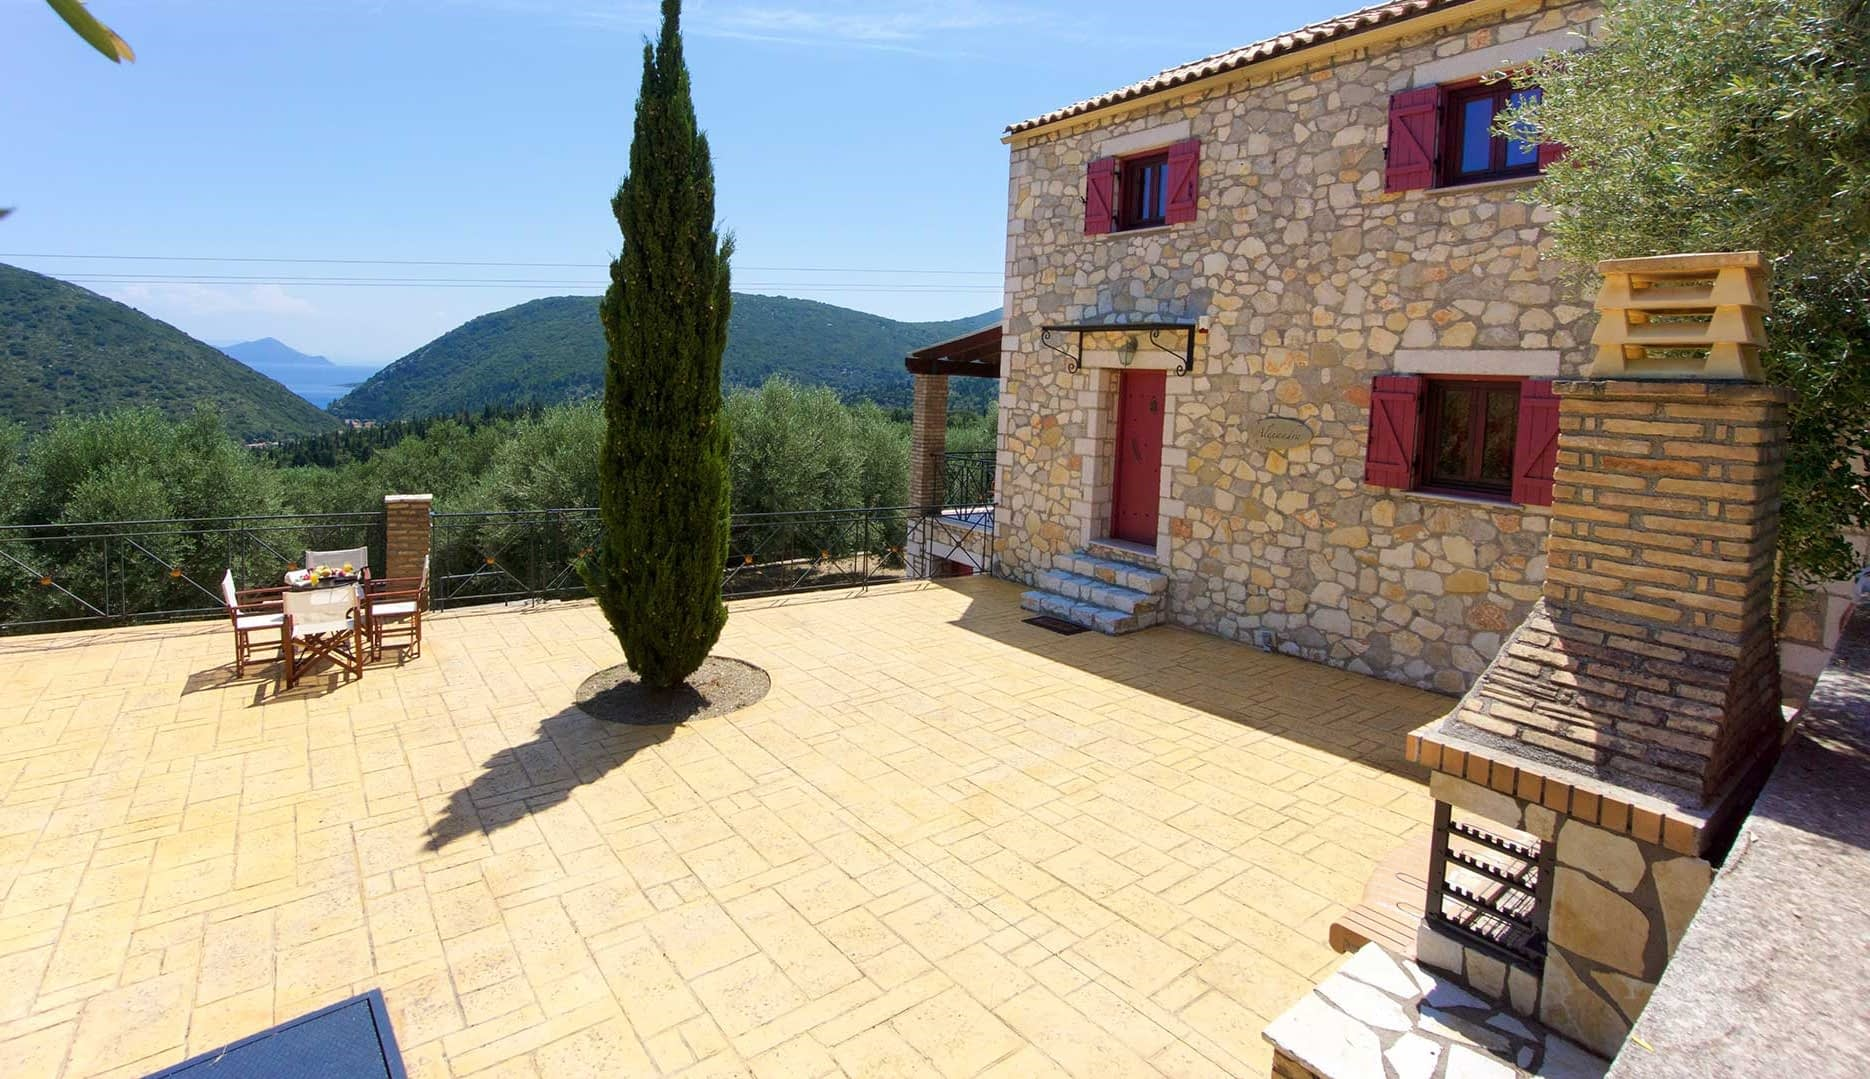 Courtyard of stone villa for rent in Ithaca Greece, Pilikata